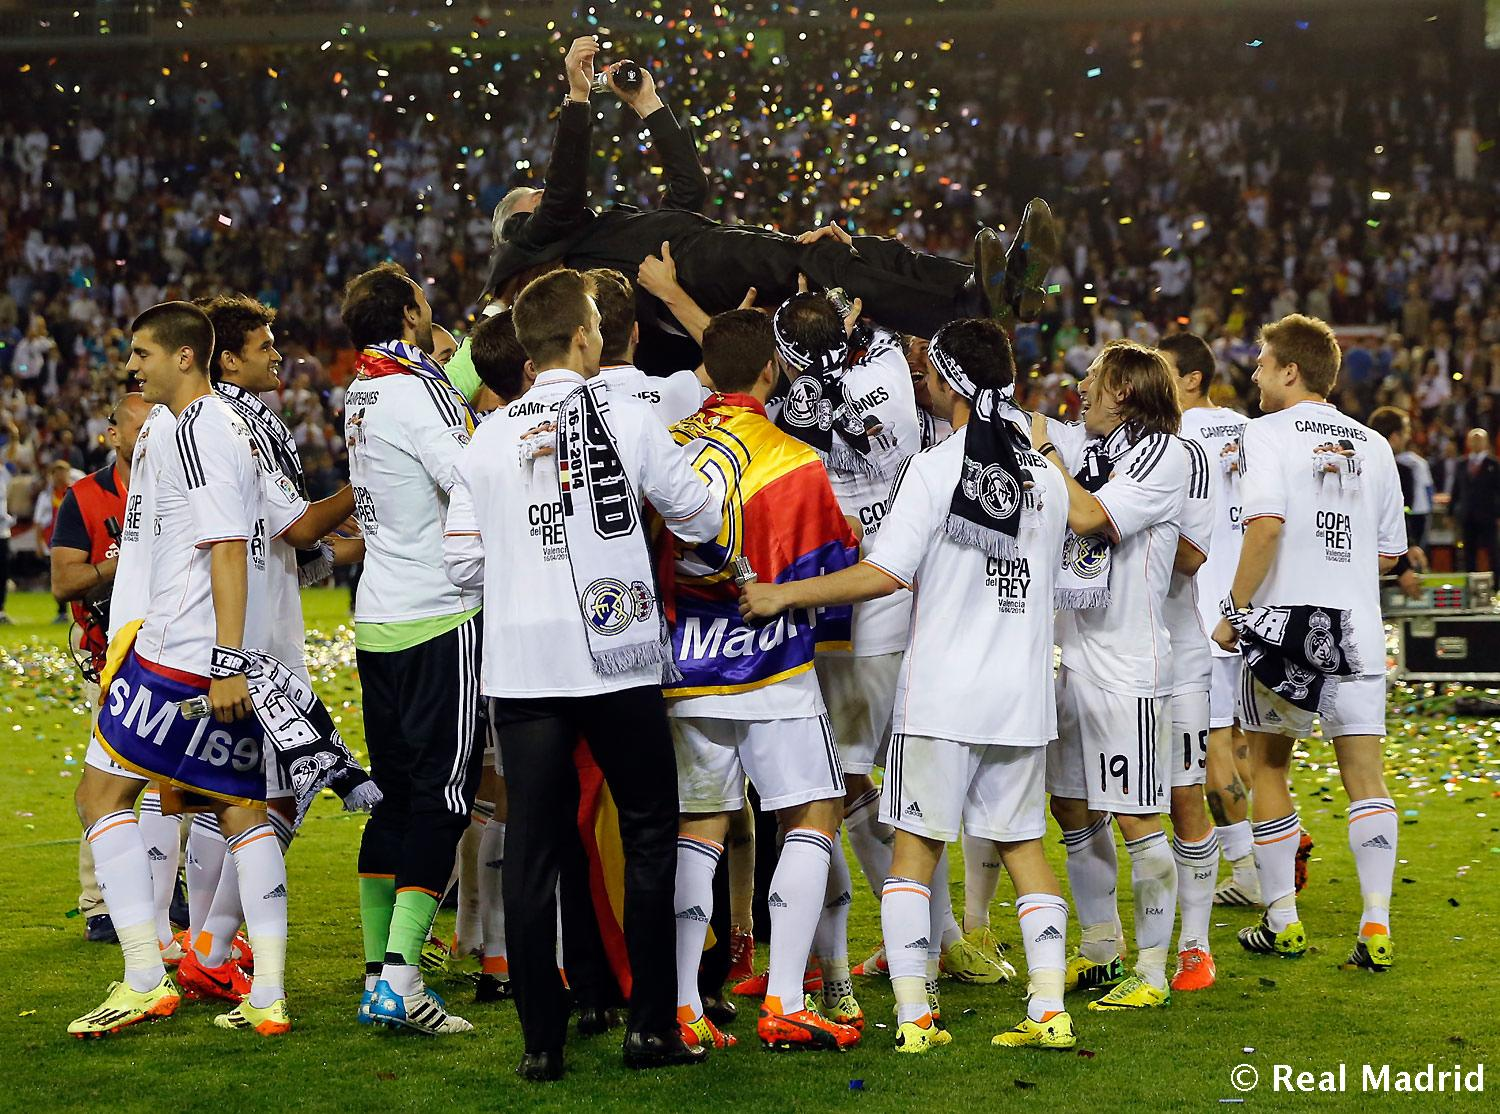 Real Madrid - Celebración cesped - 17-04-2014